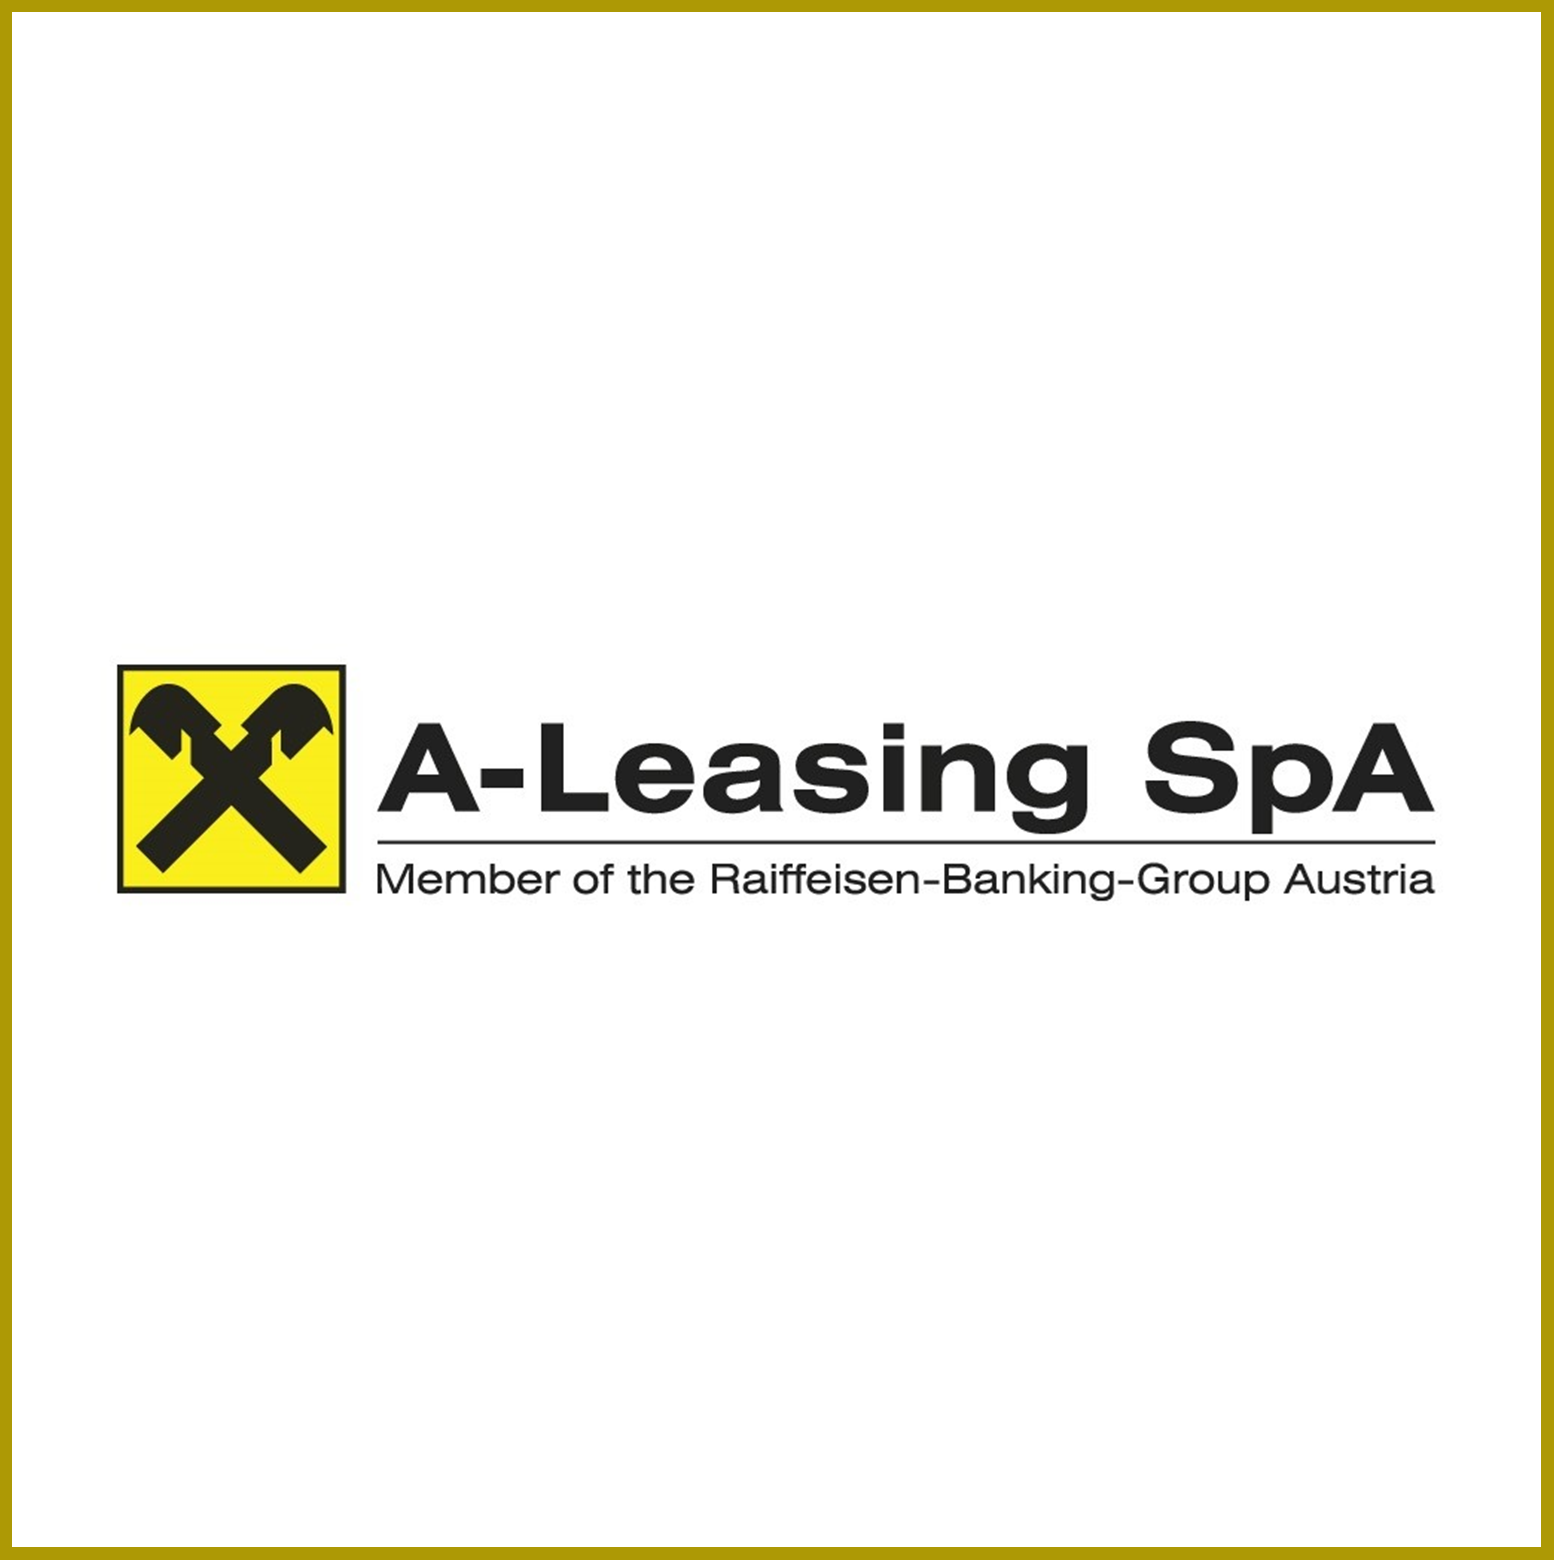 A Leasing SPA